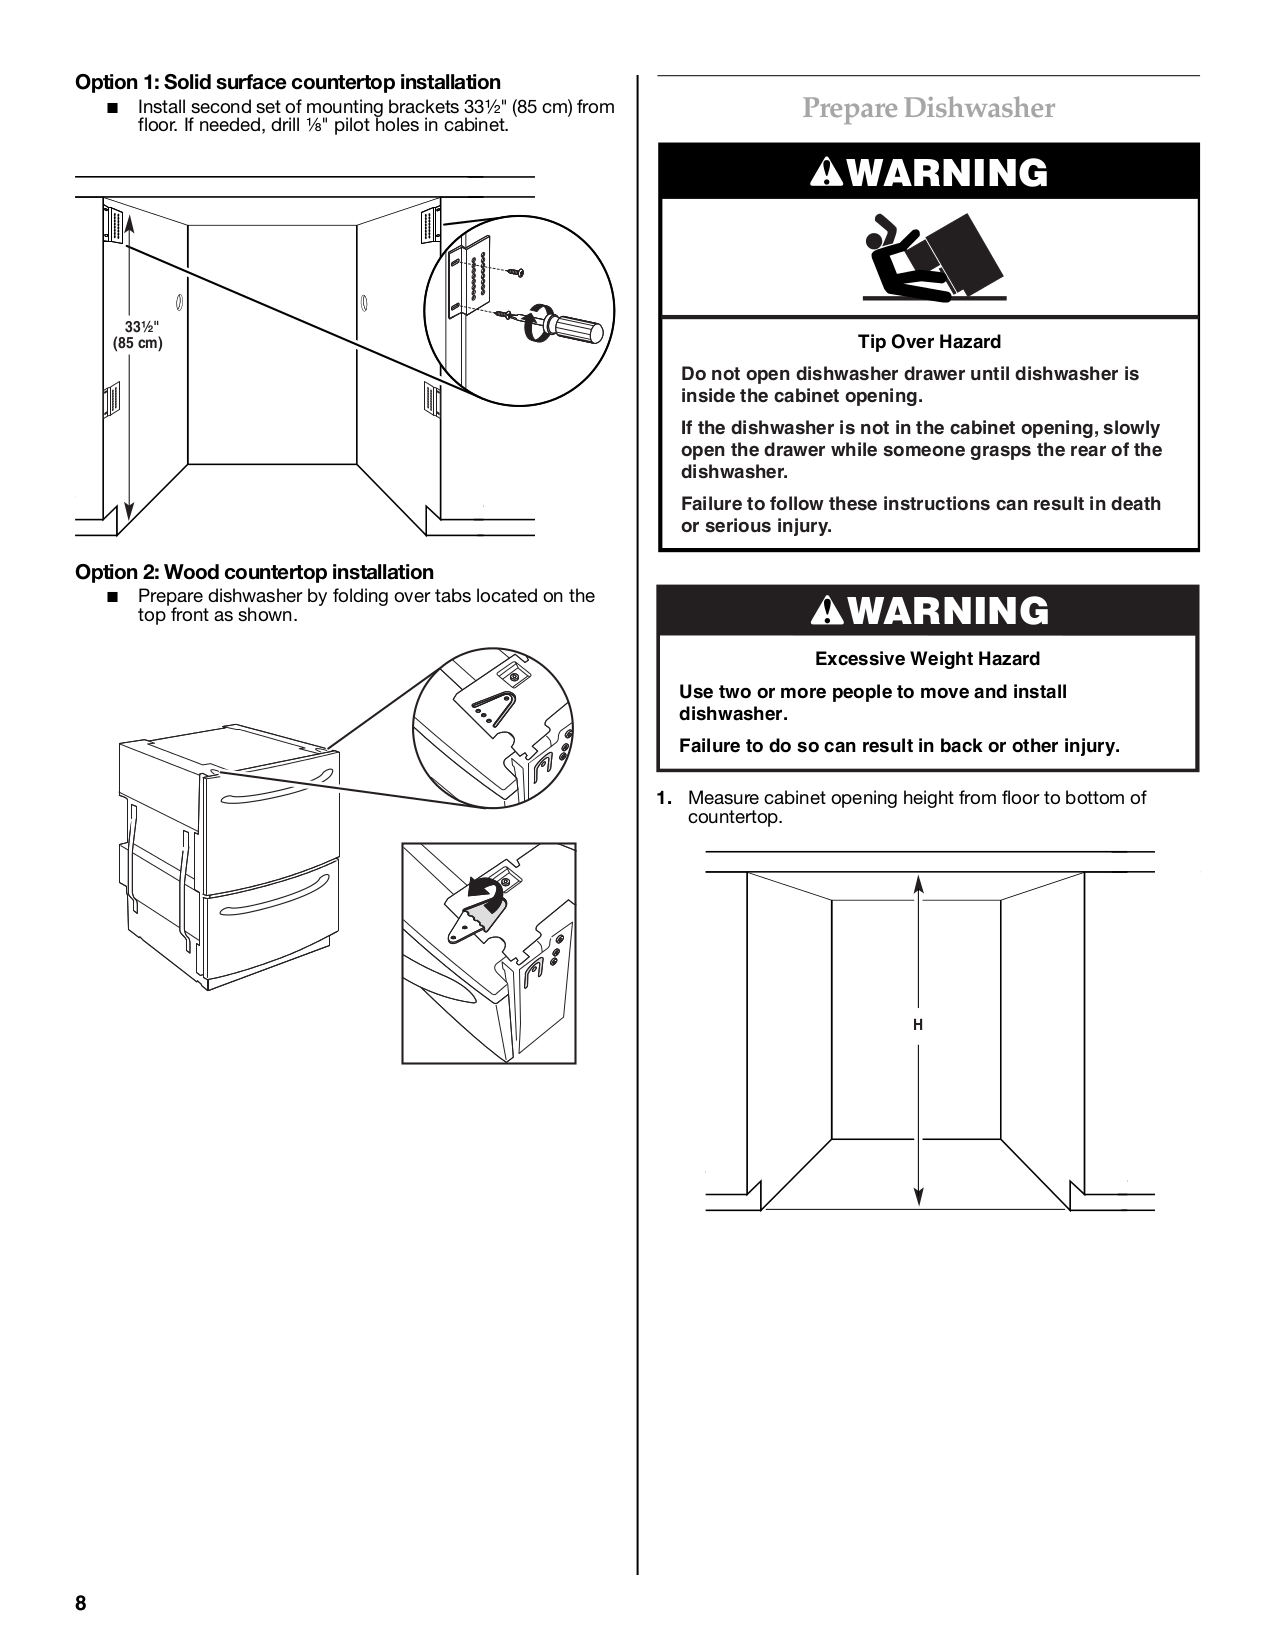 Kitchenaid Double Drawer Dishwasher User Manual - Kitchen Design